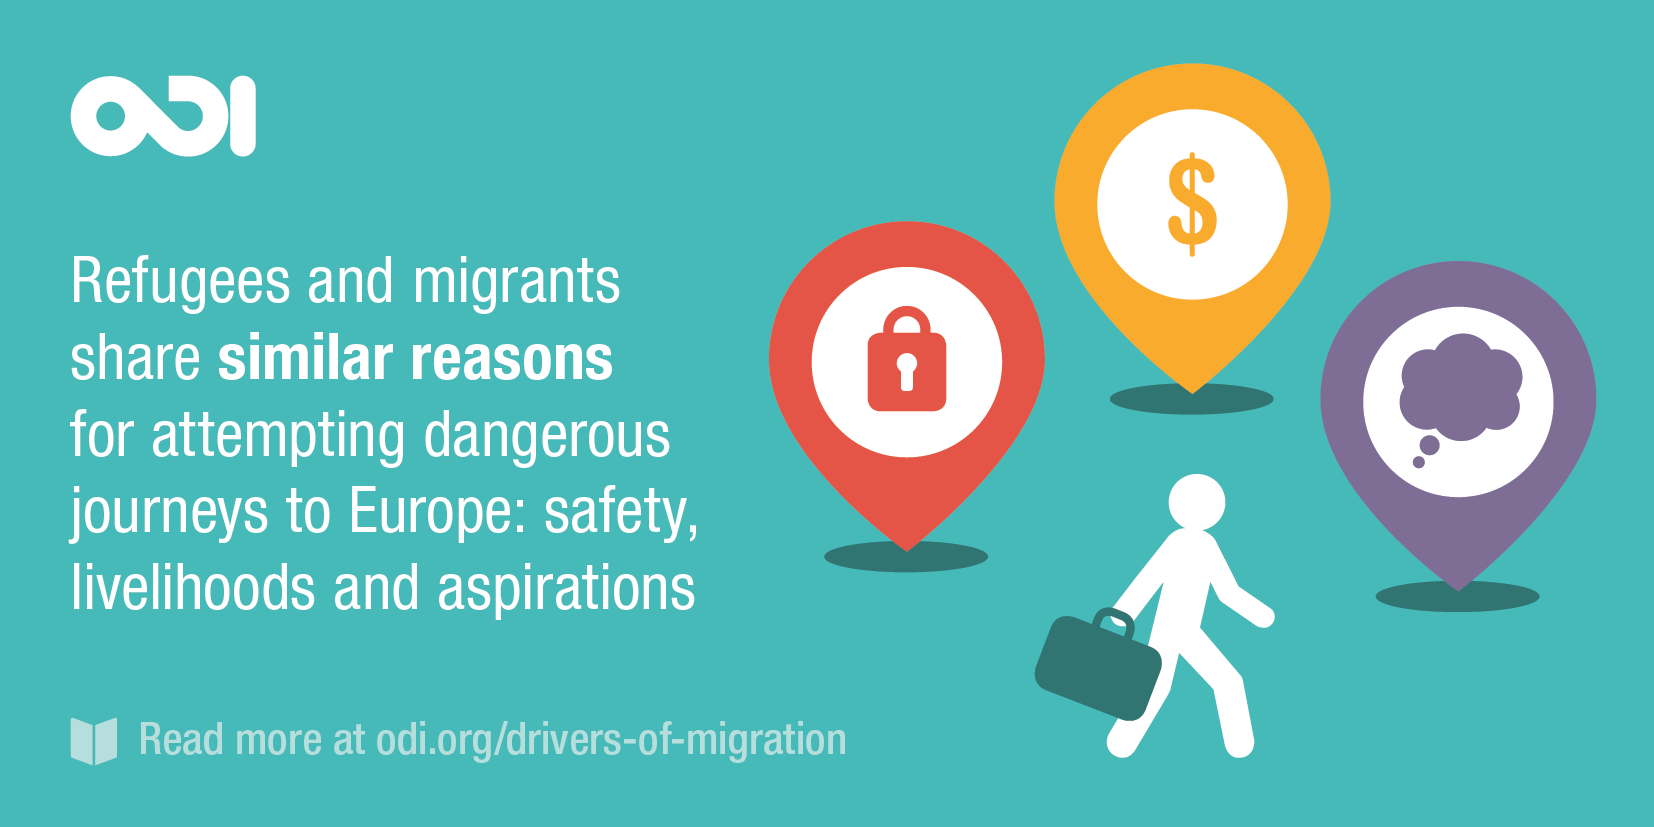 Illustration: refugees and migrations share similar reasons for attempting dangerous journeys to Europe: safety, livelihoods and aspirations